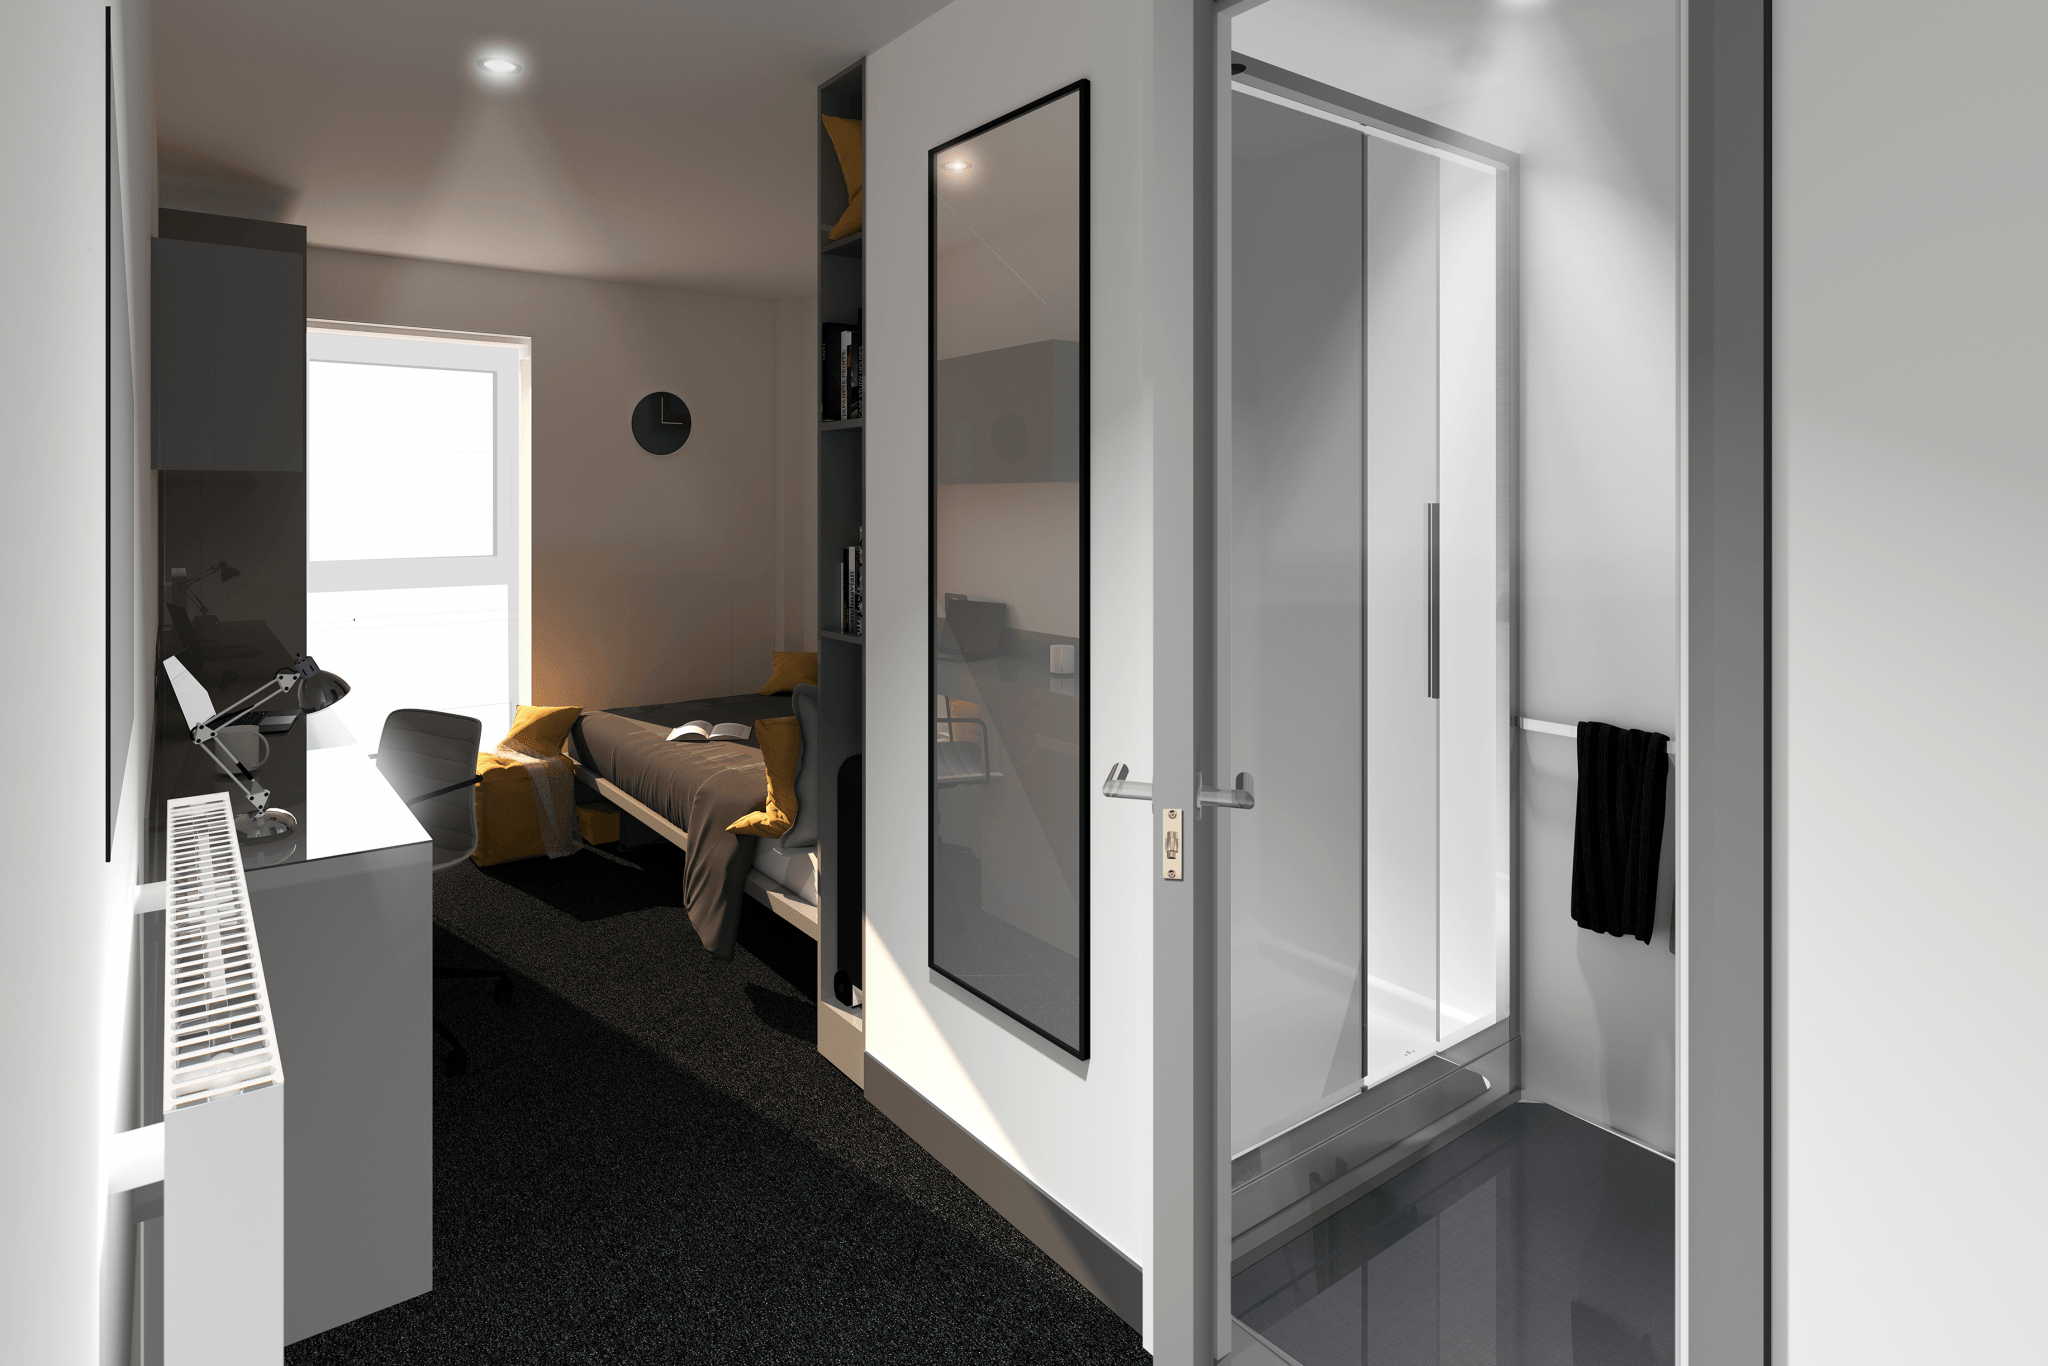 Architects Impression of 179 High Street Bedroom with a focus on the en-suite door but can see the bed in the background.